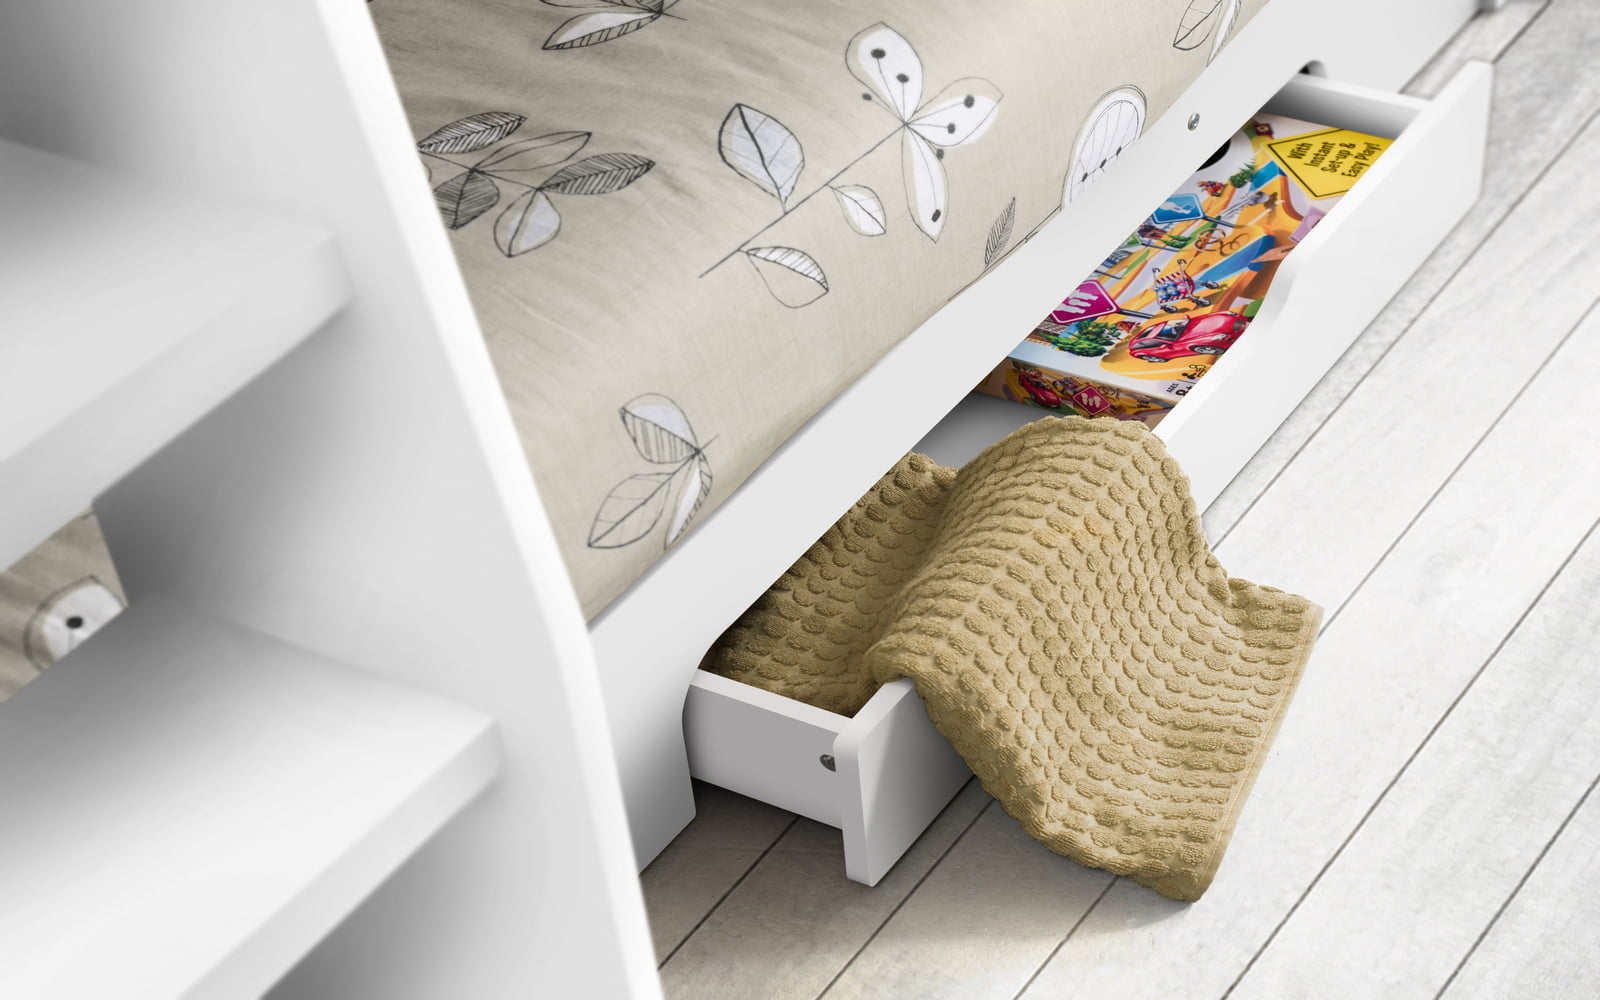 Orion Bunk Bed In White: Bunk Bed With Shelves | €495 On